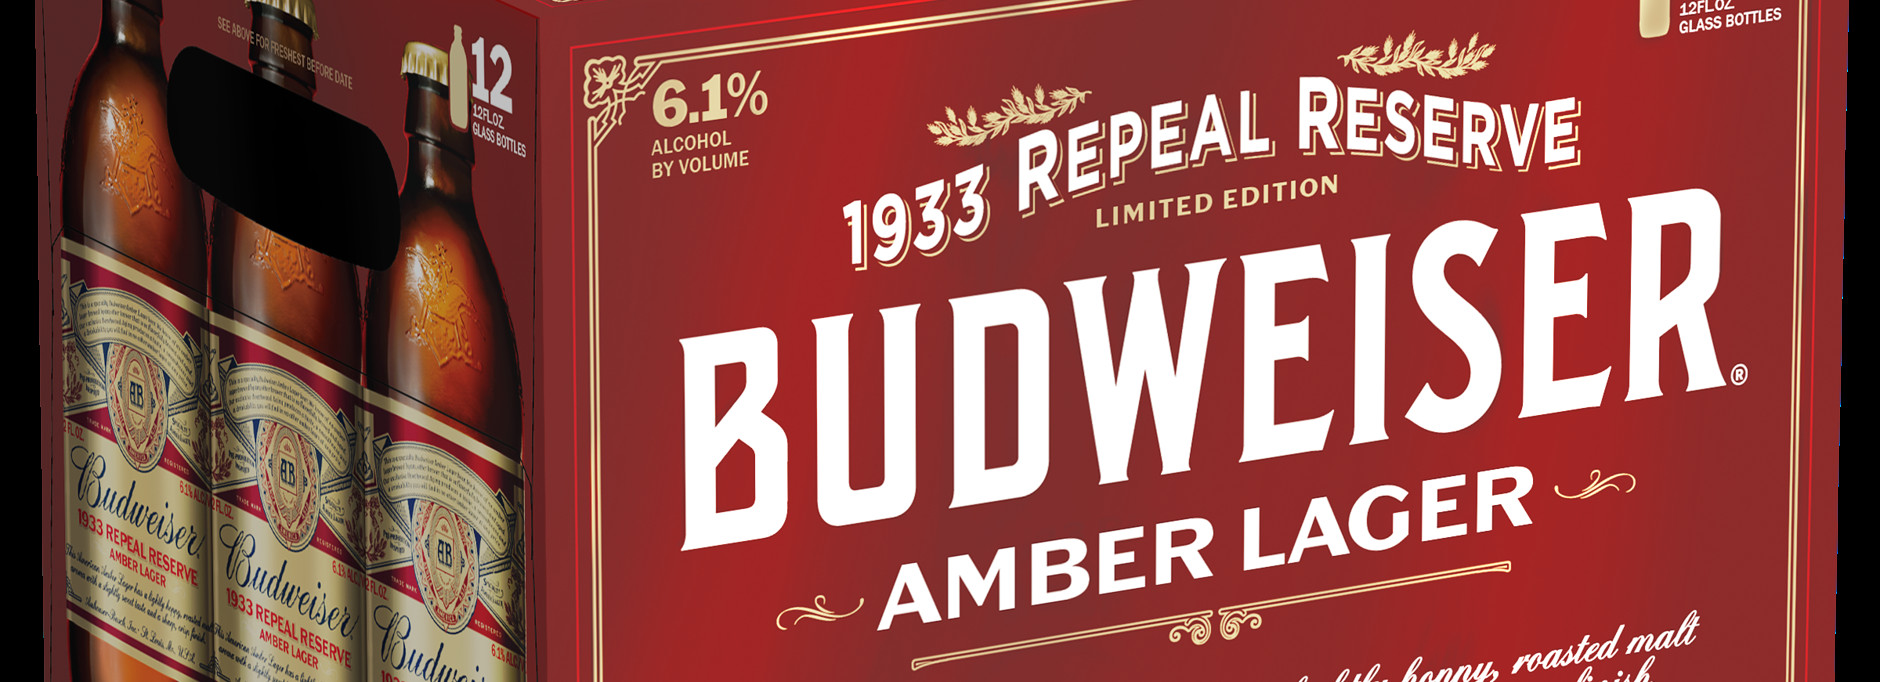 What Is The #1 Beer In The World: Budweiser